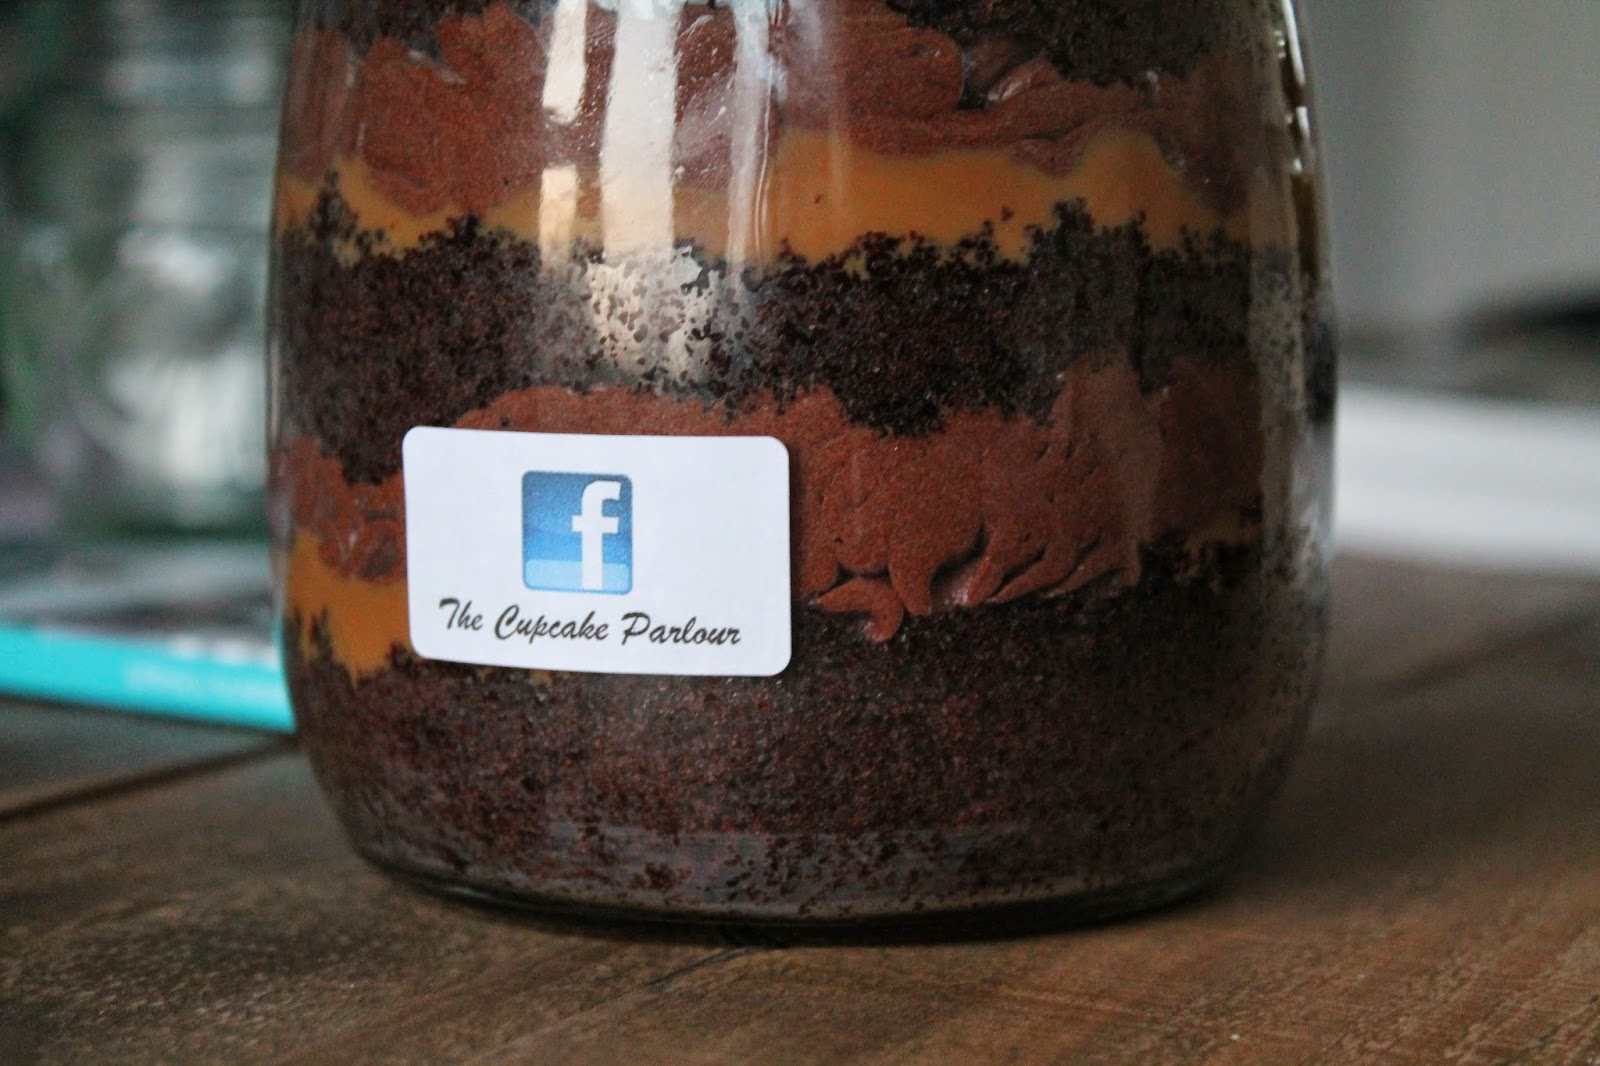 The Cupcake Parlour Cake in a jar Redcar Chocolate